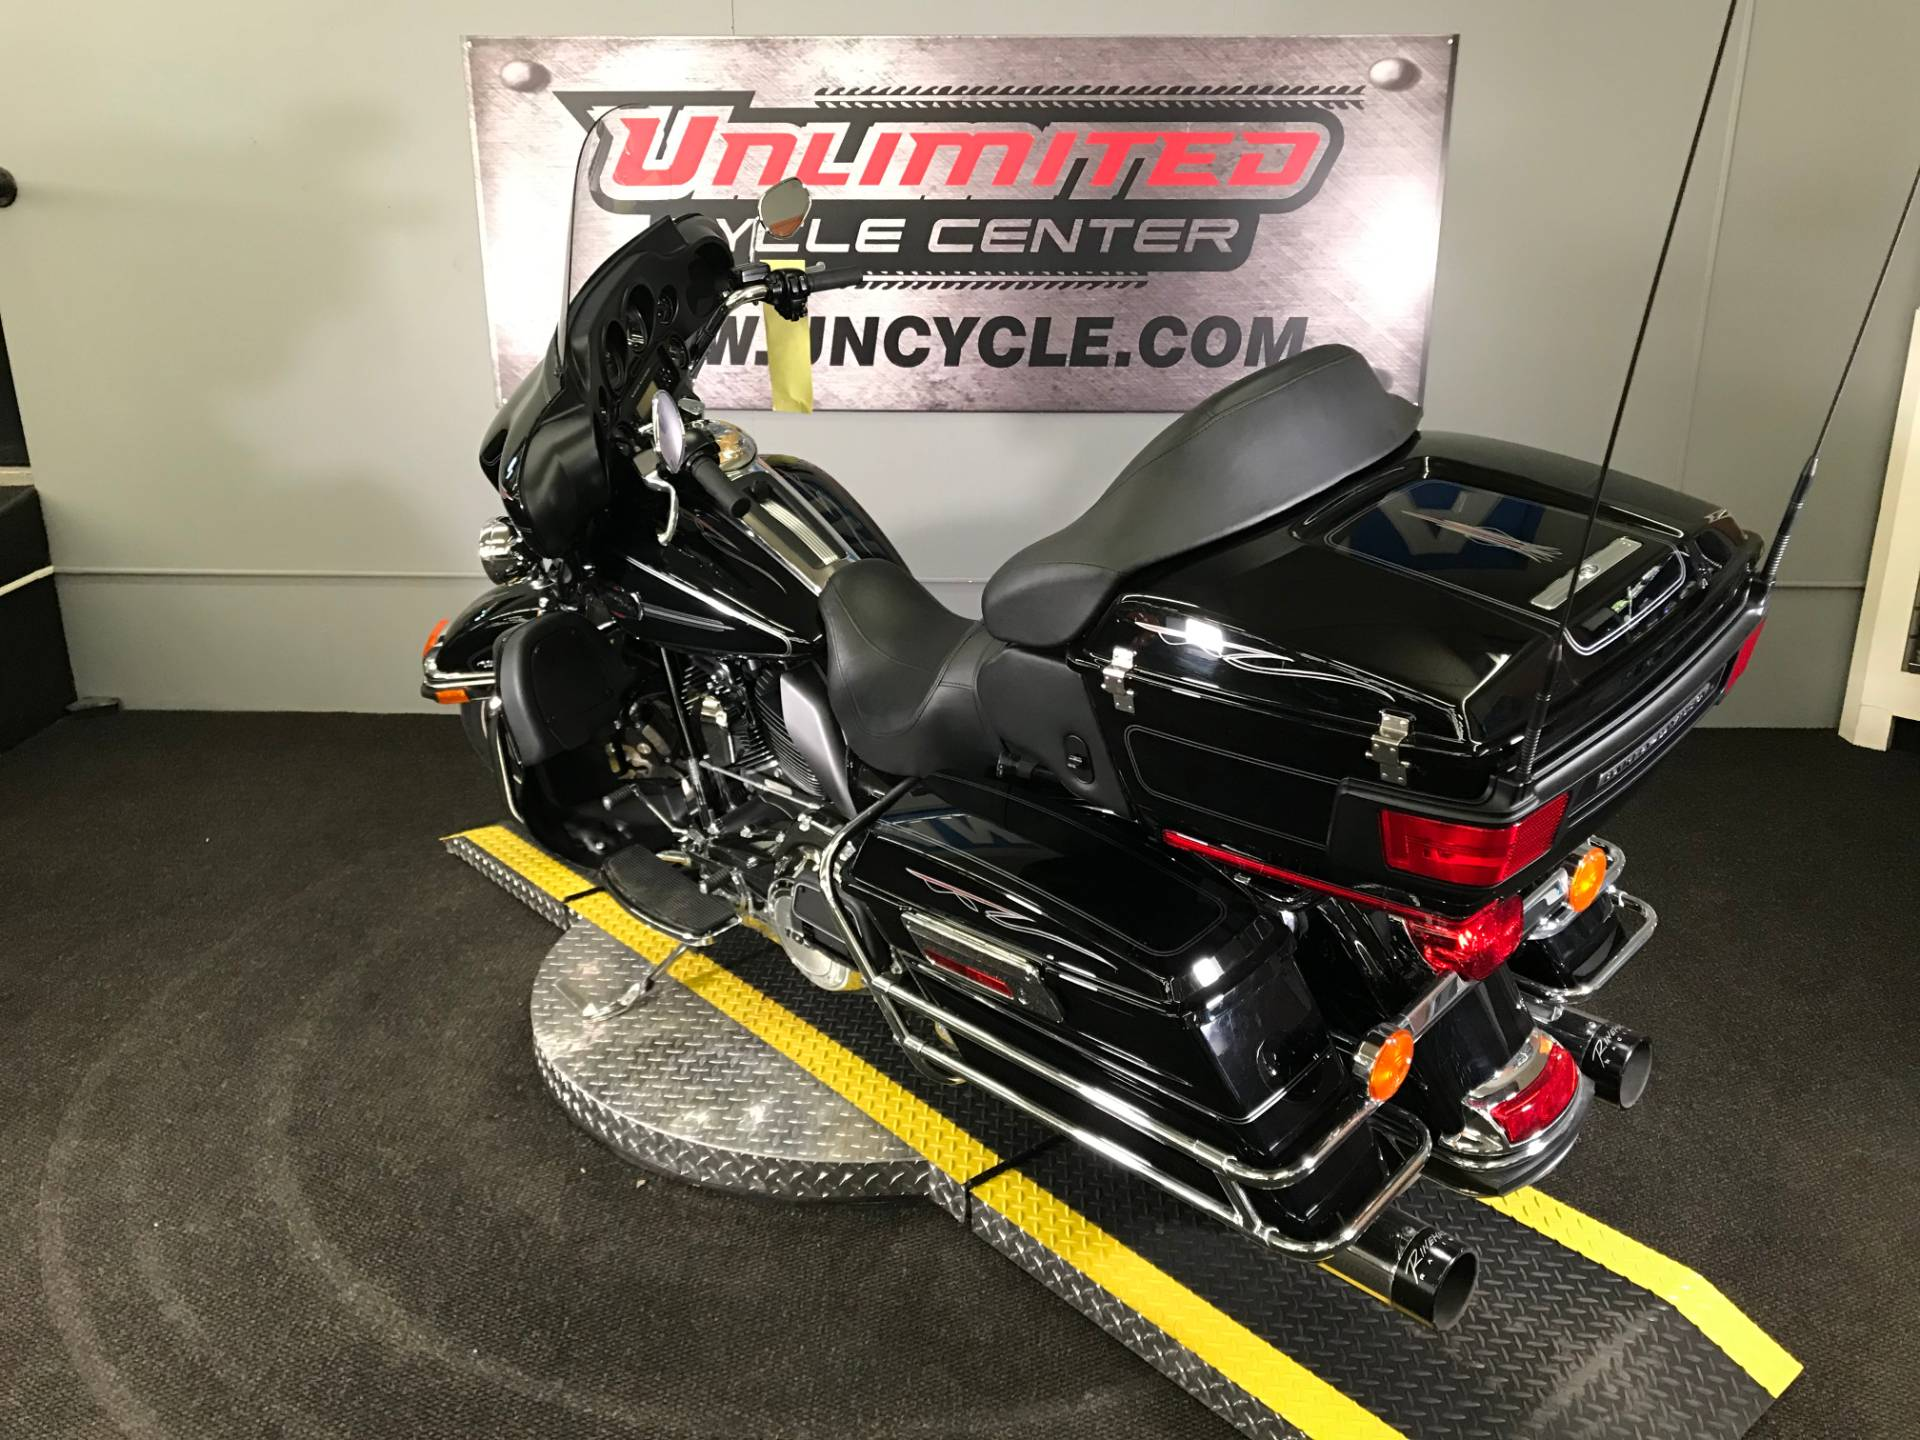 2013 Harley-Davidson Ultra Classic® Electra Glide® in Tyrone, Pennsylvania - Photo 9